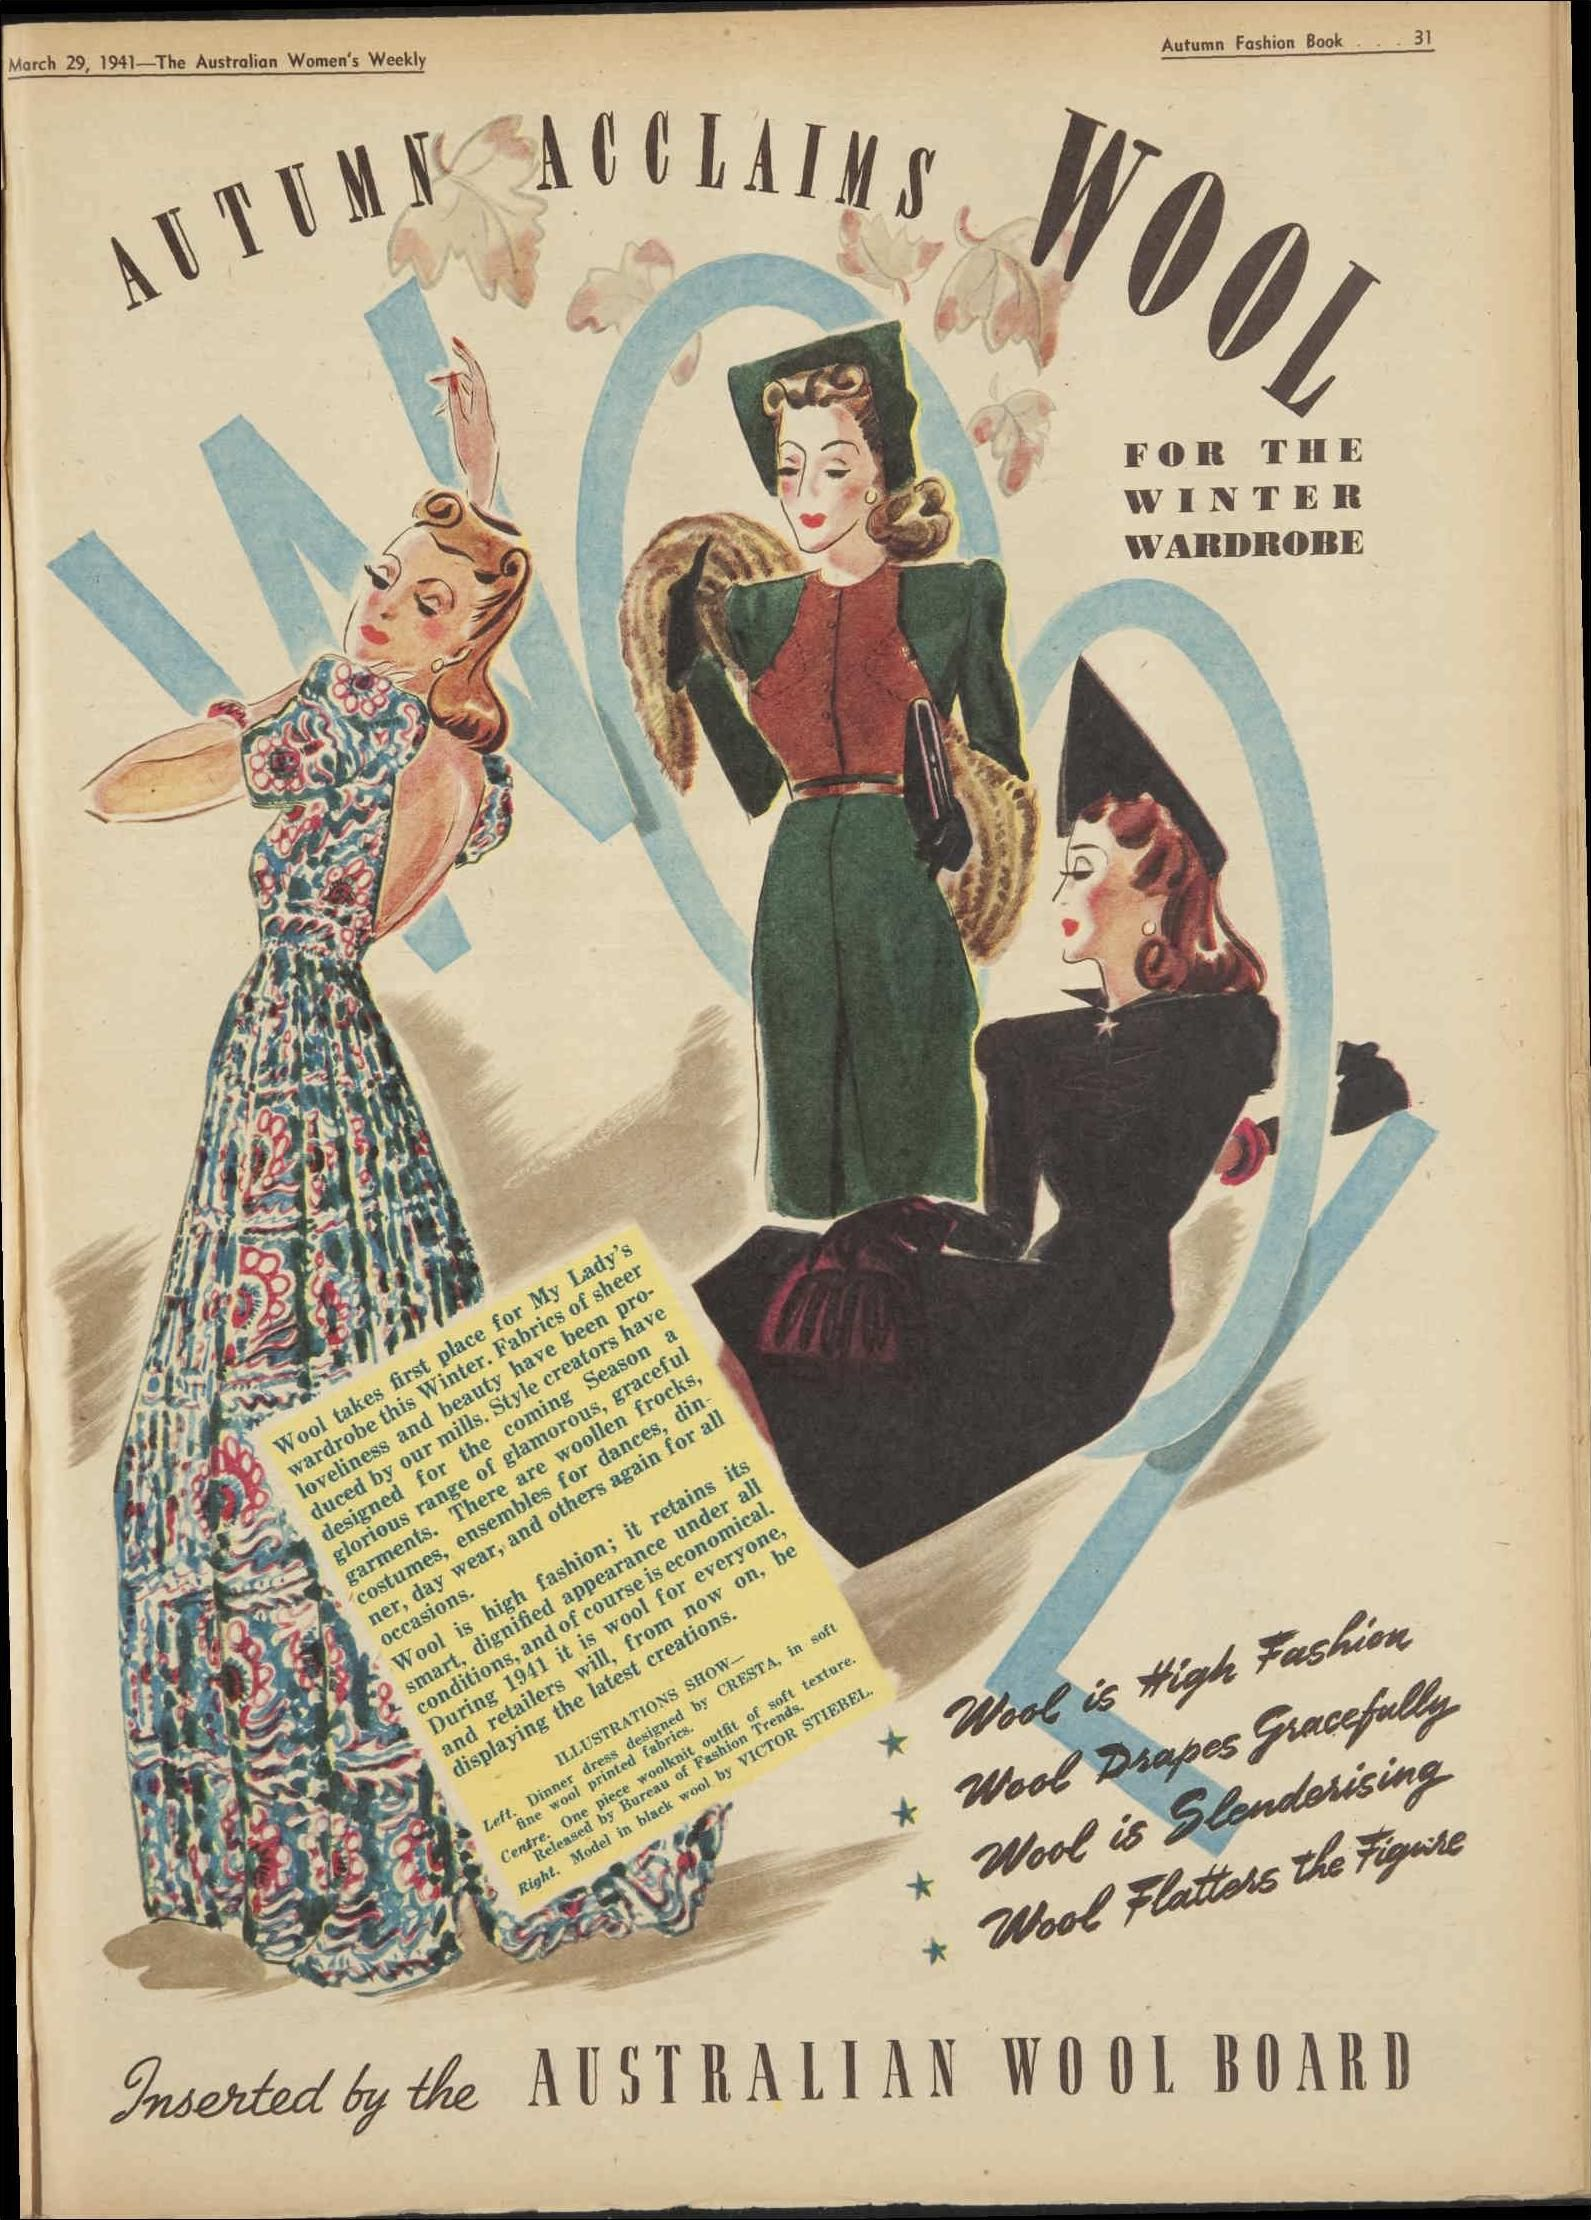 Vintage clothes fashion ads of the 1940s page 22 - The Australian Women S Weekly March 29 1941 1940 S Fashionretro